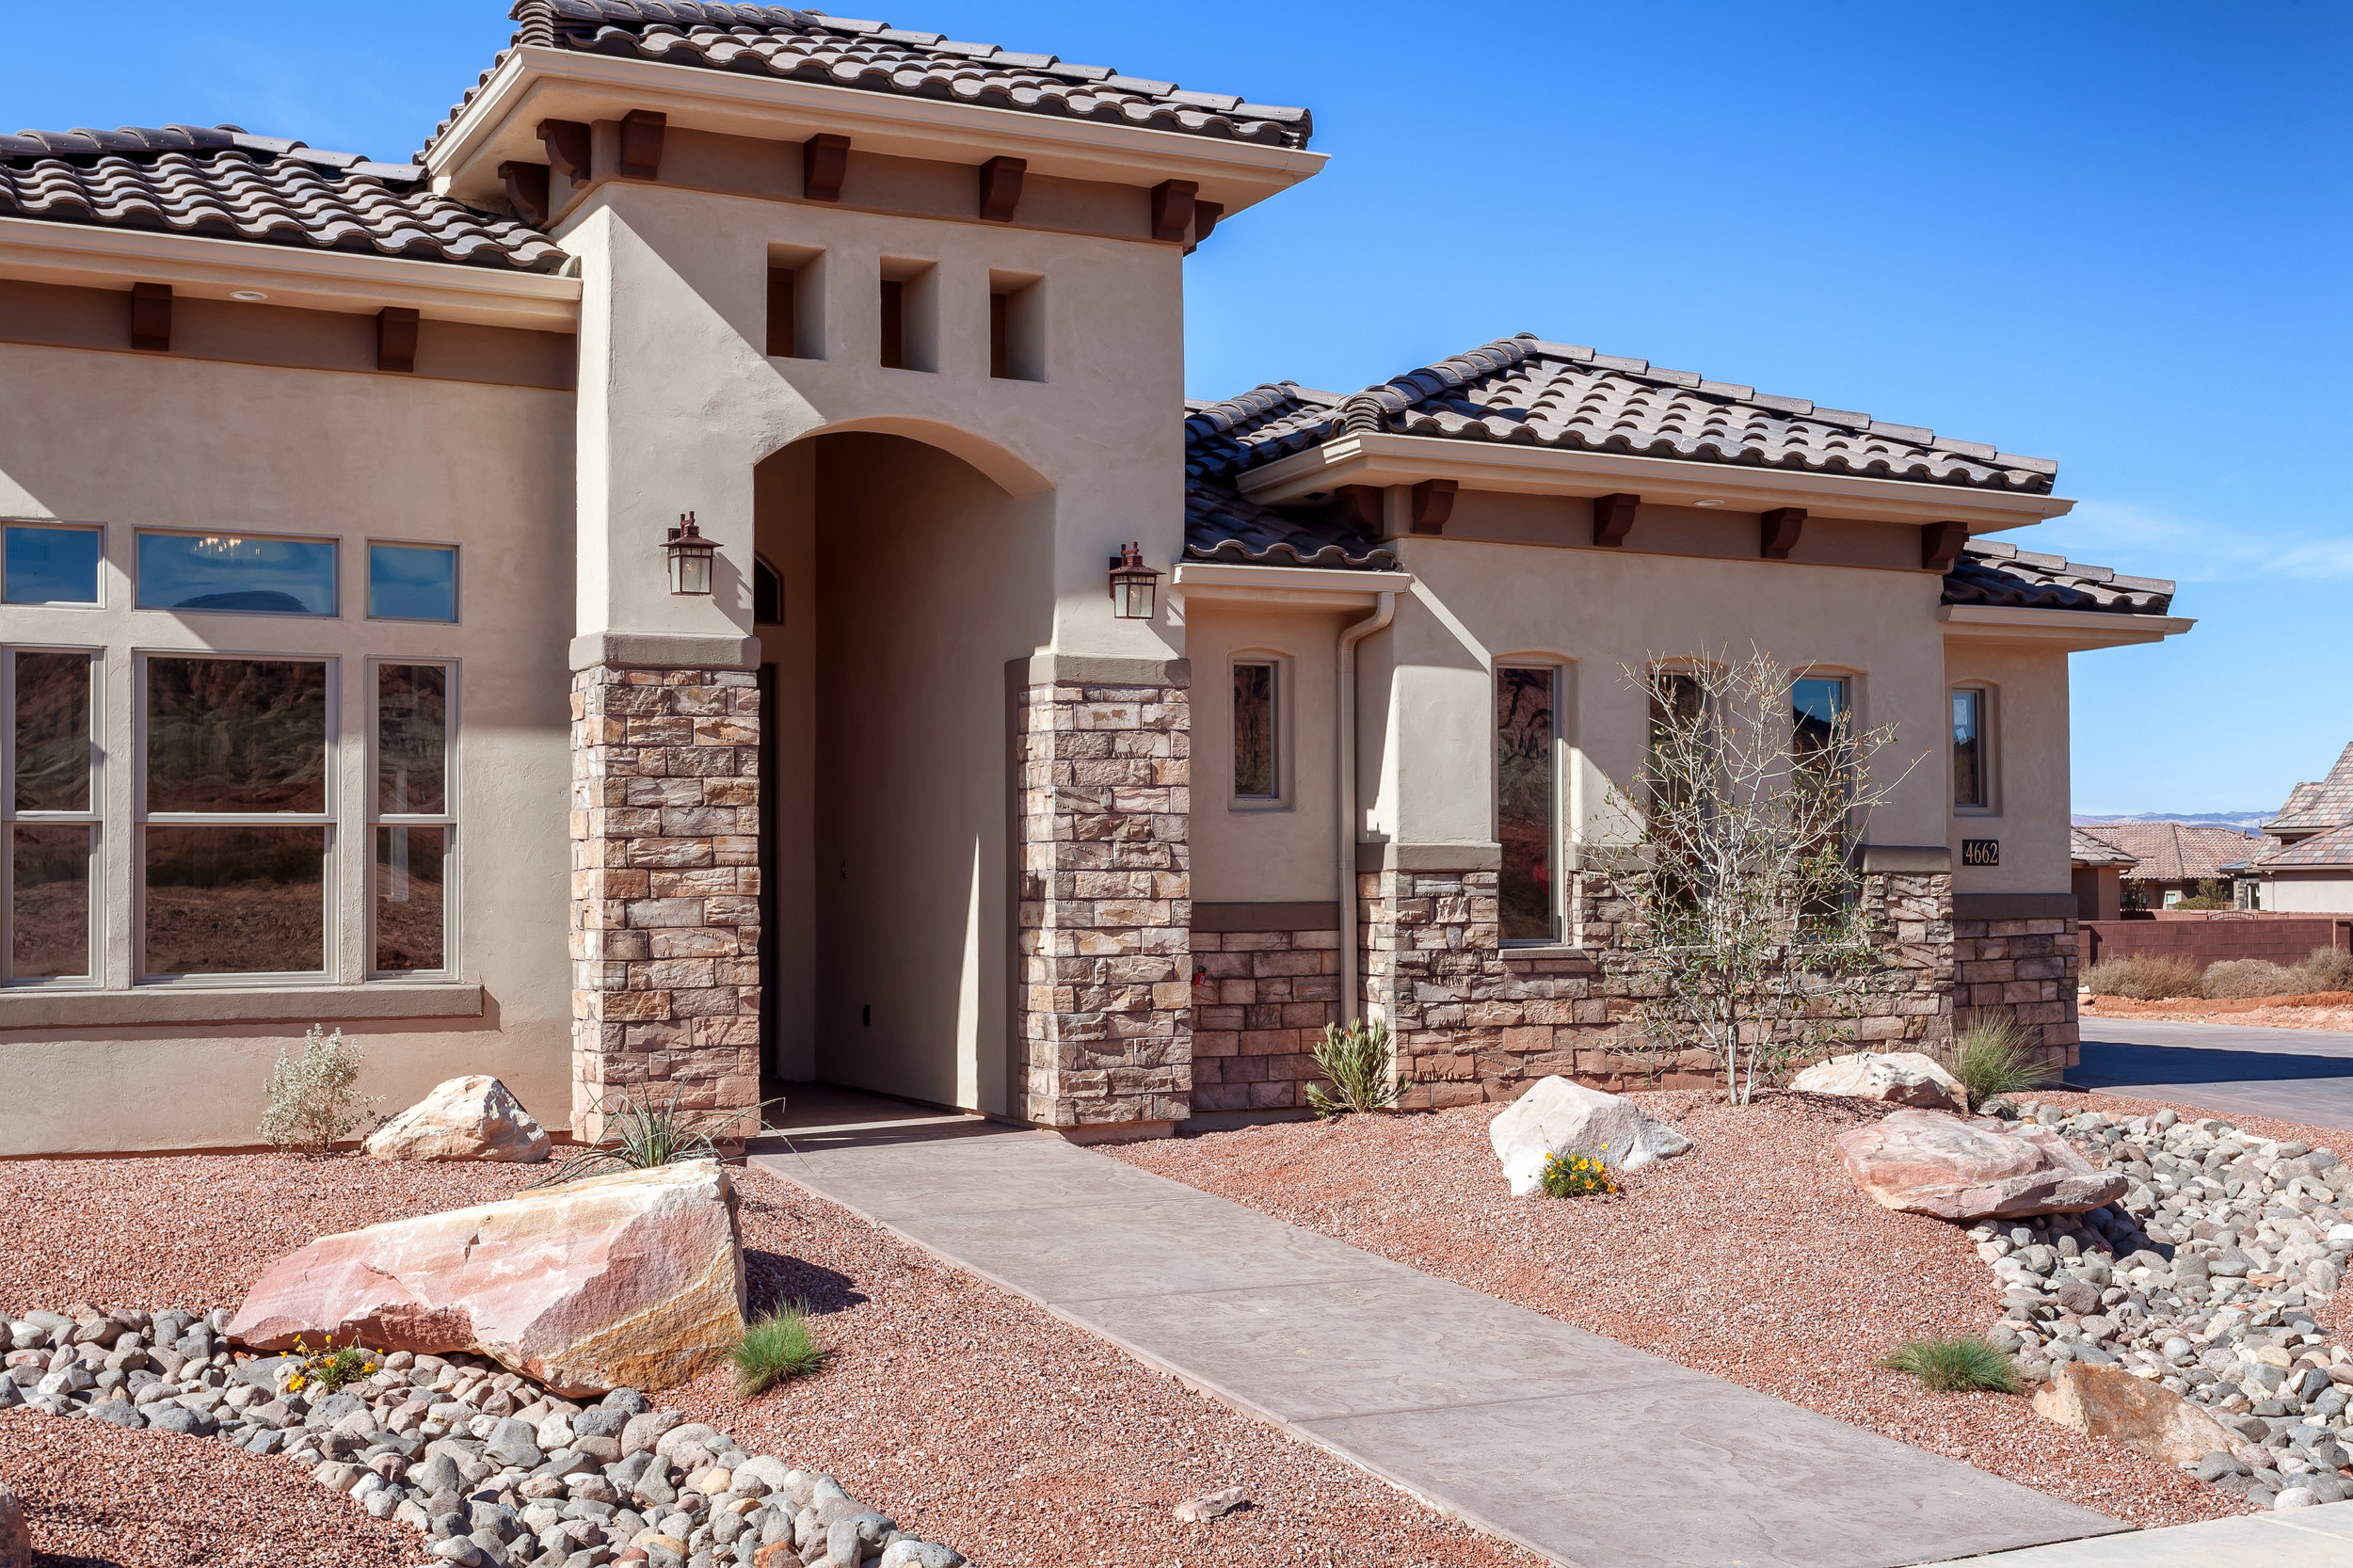 st george utah home design